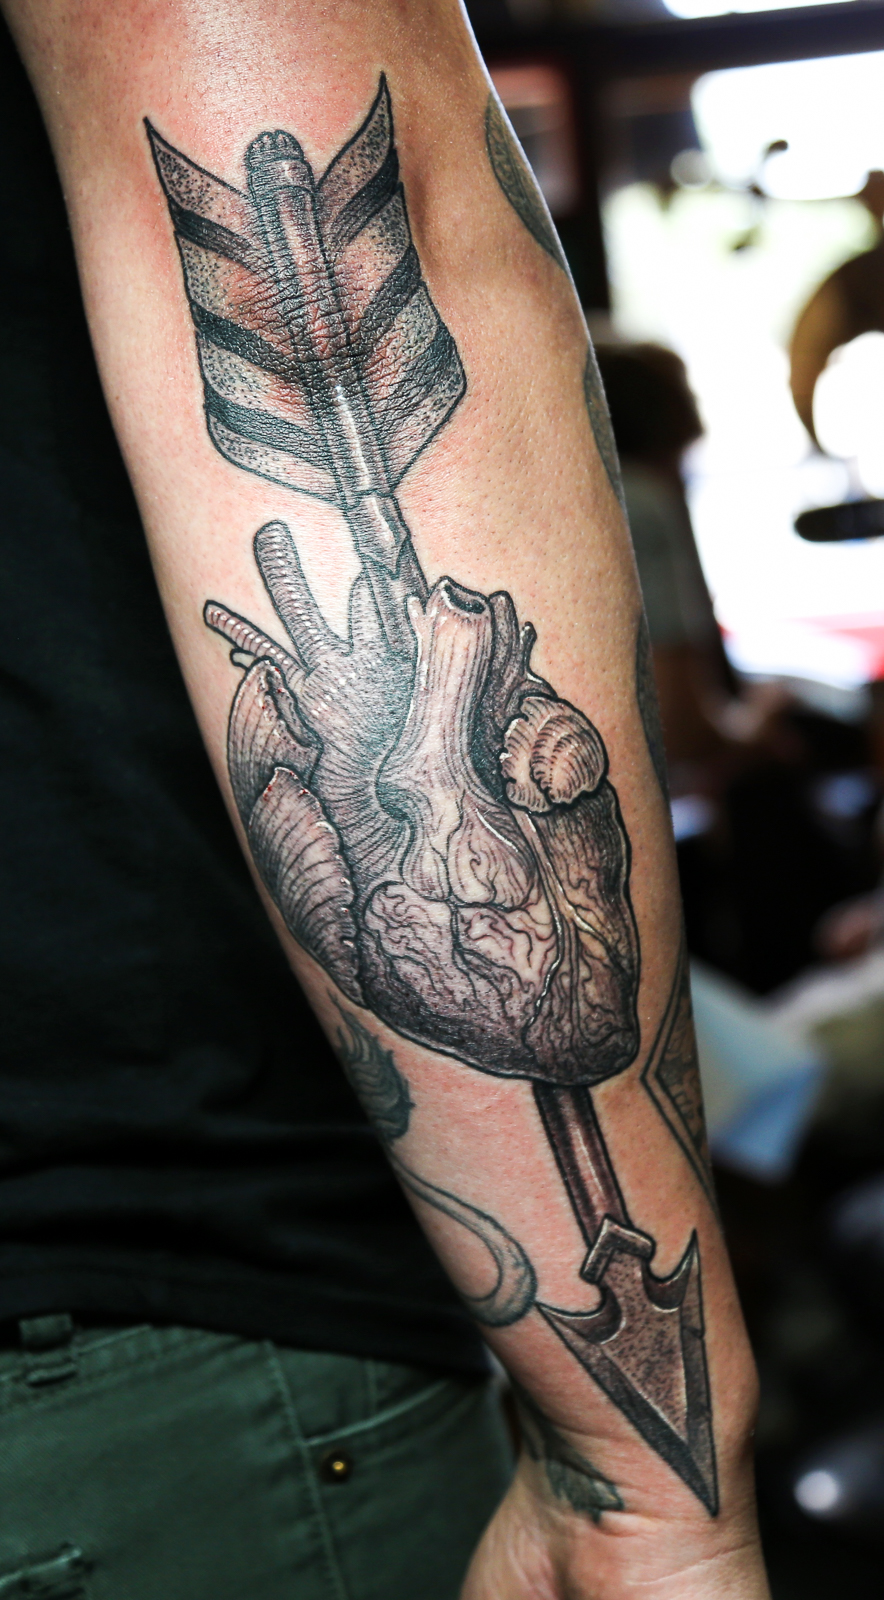 heart with arrow 1 enrique bernal ejay tattoo.jpg